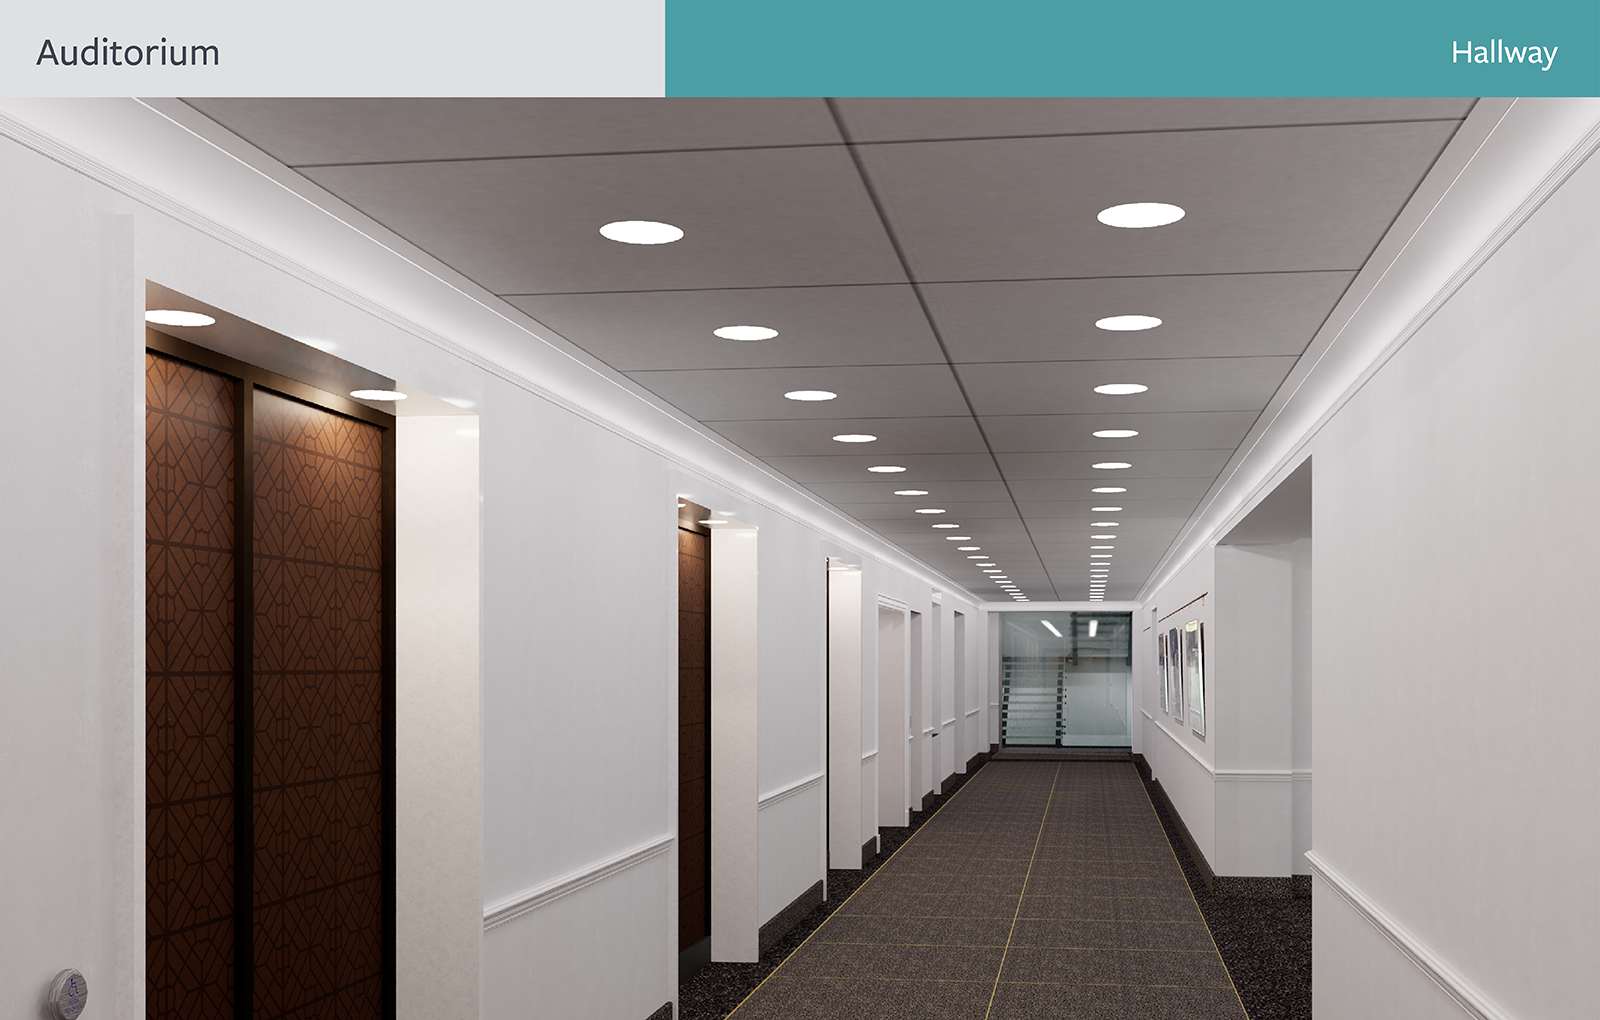 The rendering of Auditorium Hallway